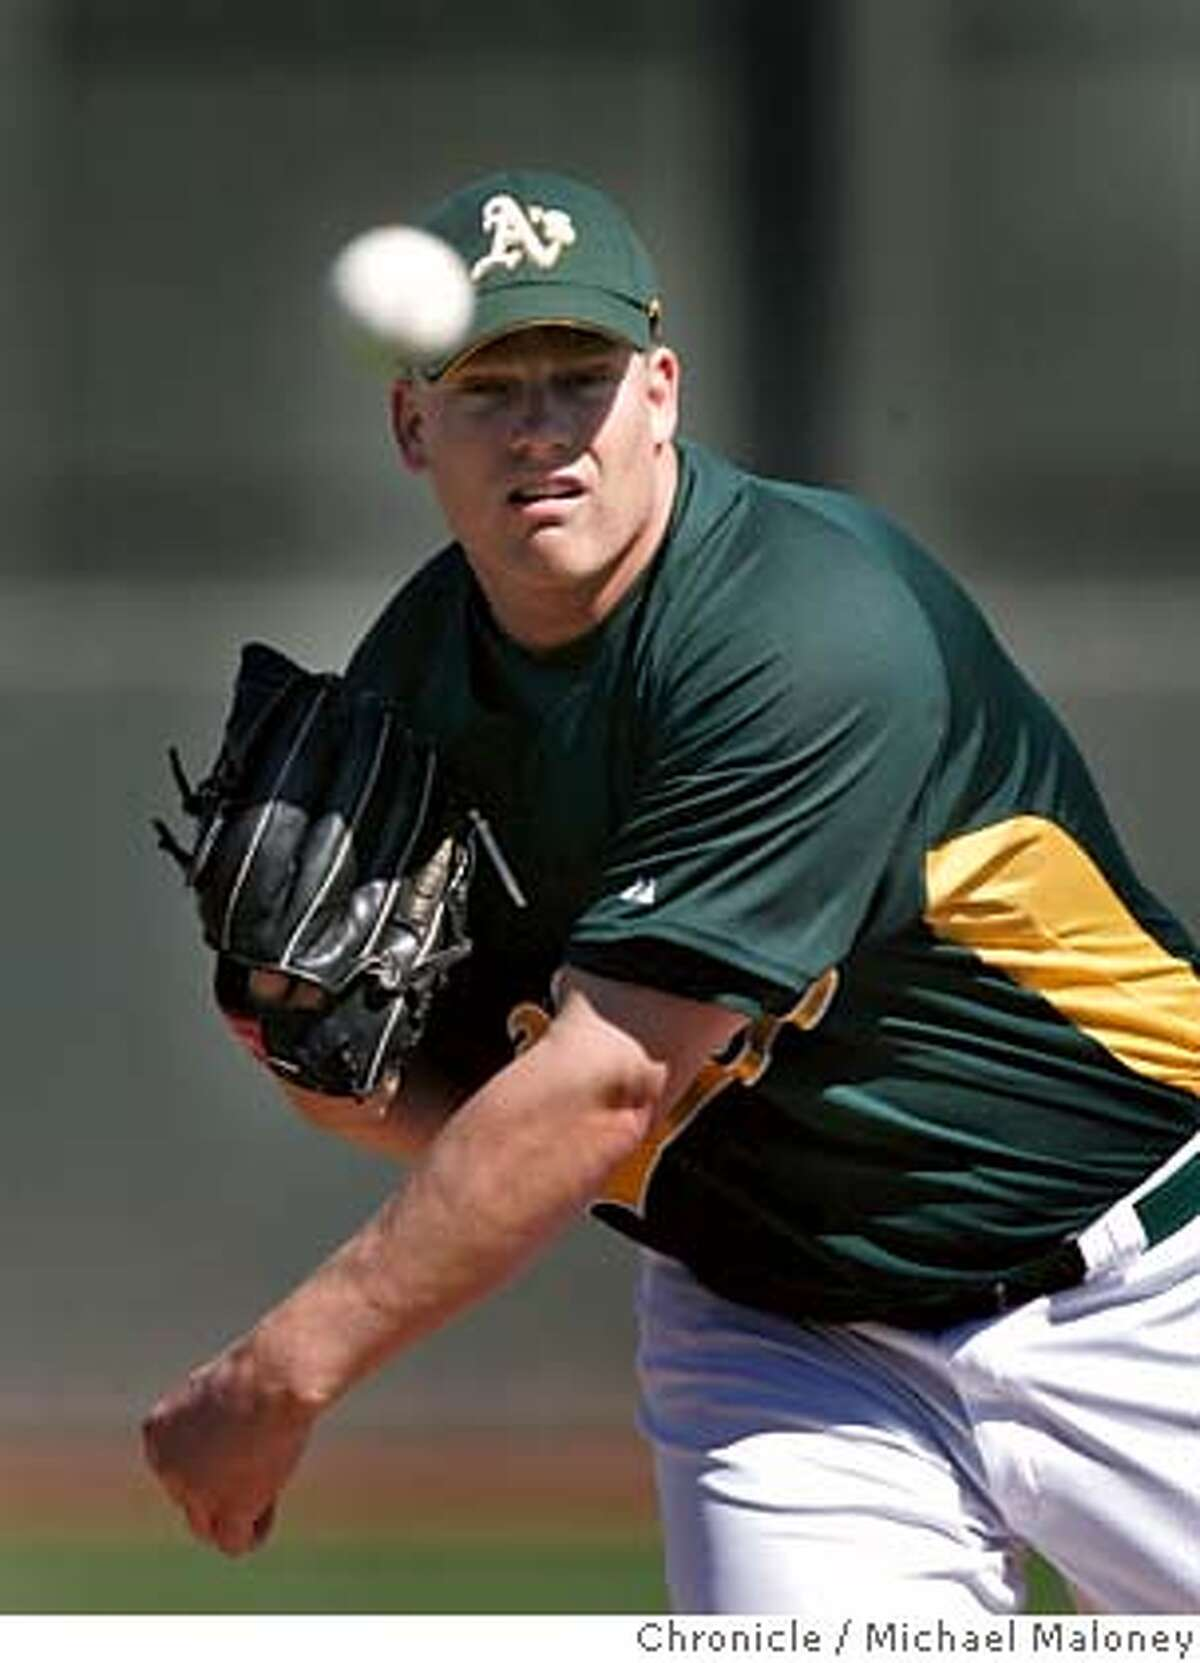 Starting pitcher Oakland Athletics Joe Kennedy had a rough outing, charged with 4 runs. The Oakland Athletics host the Milwaukee Brewers in a spring training game at Phoenix Municipal Stadium in Phoenix, Arizona on March 2, 2007. The Athletics won 7-6. Photo by Michael Maloney / San Francisco Chronicle ***roster Joe Kennedy